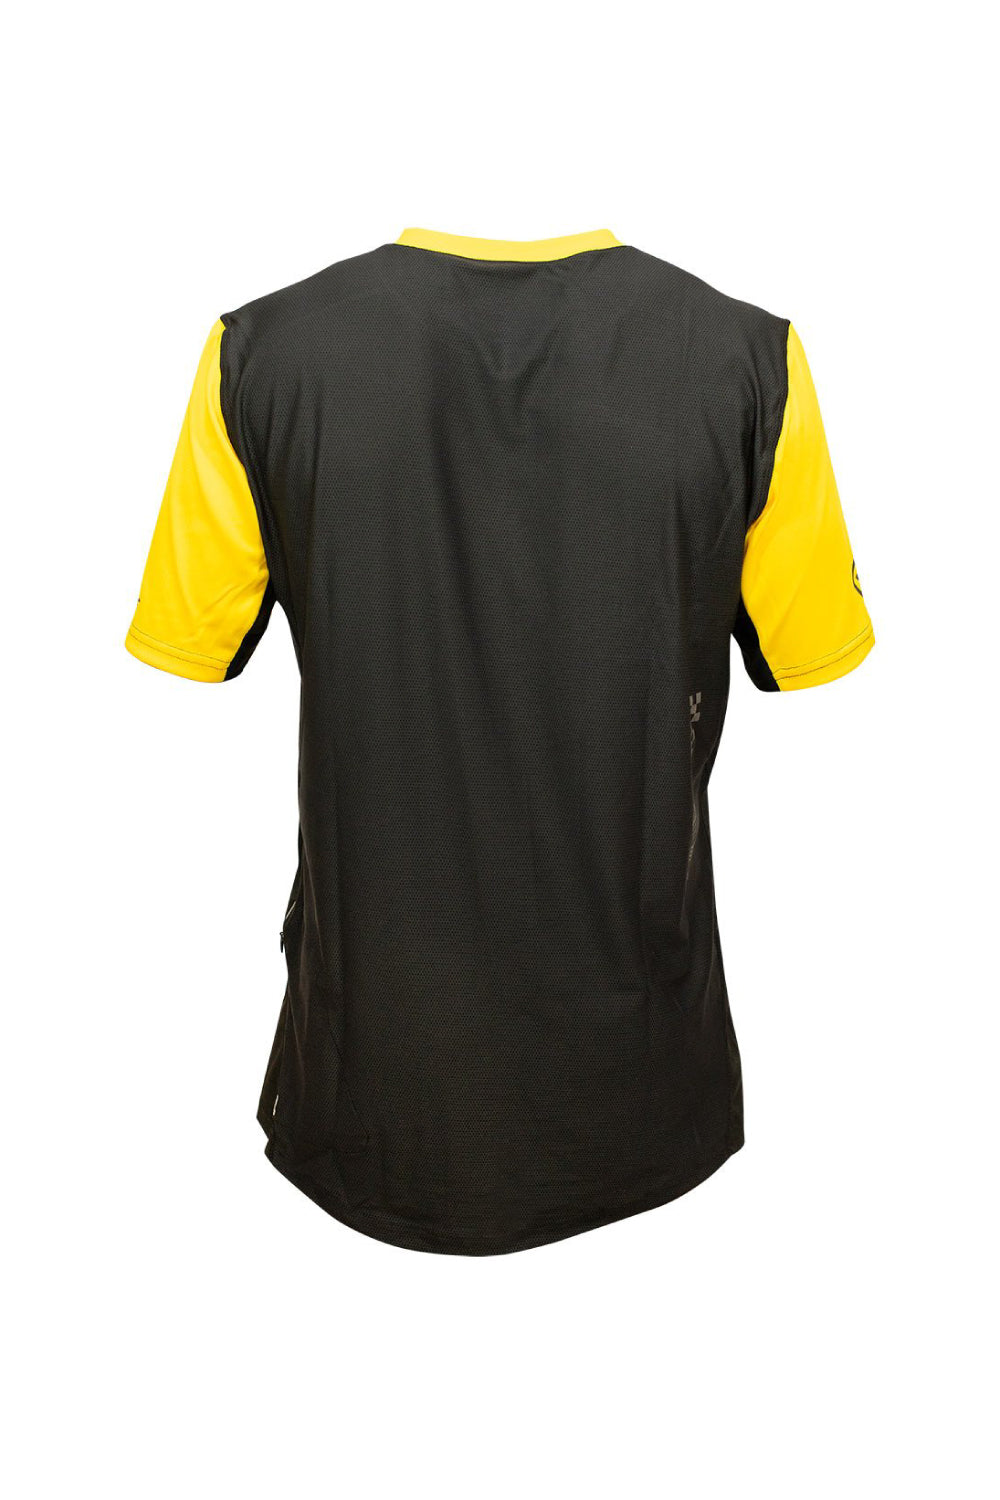 Fasthouse Alloy Star YOUTH Short Sleeve Jersey